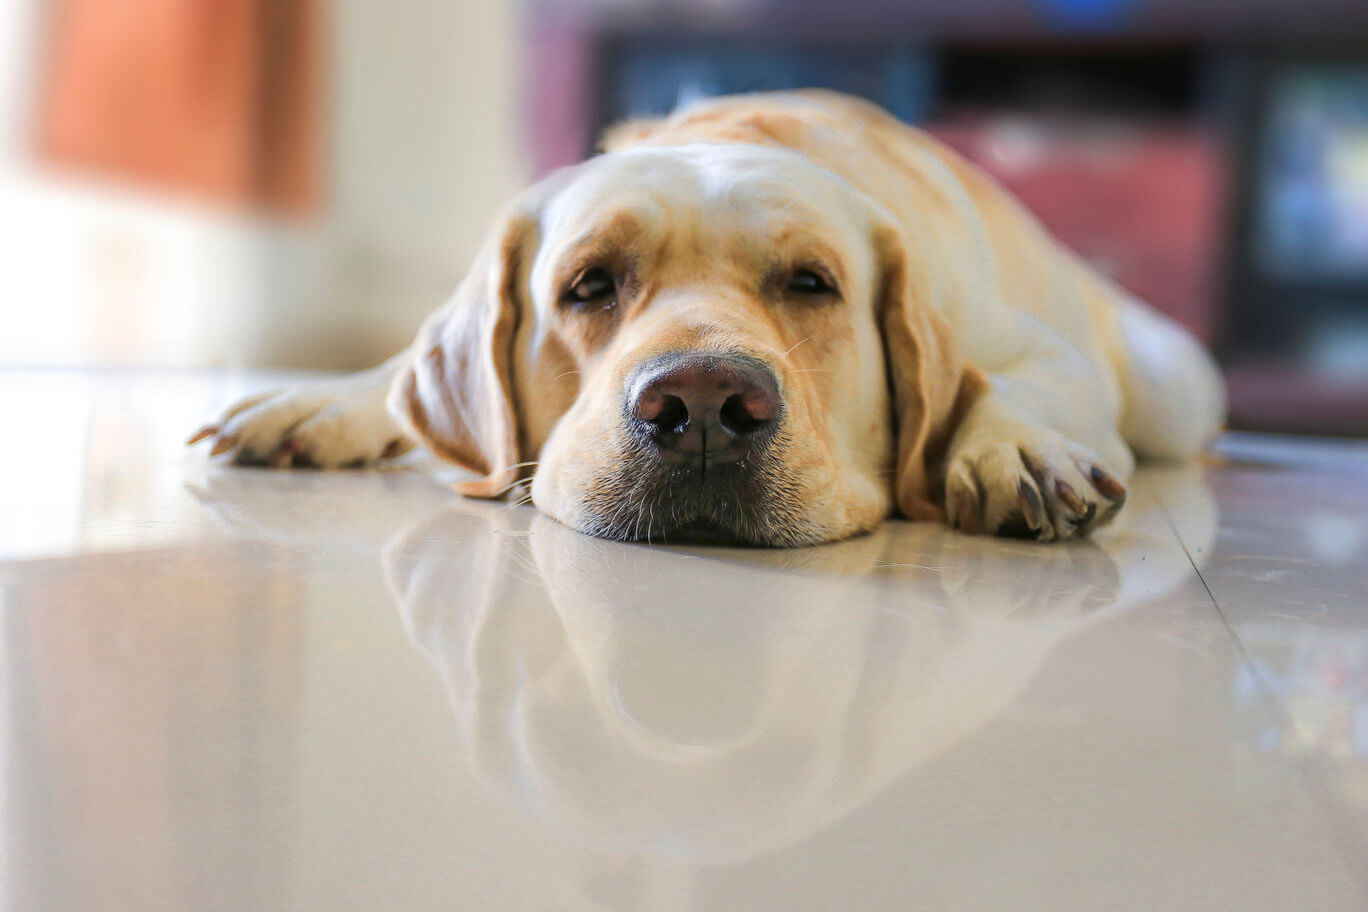 Dog keeping cool lying on tile